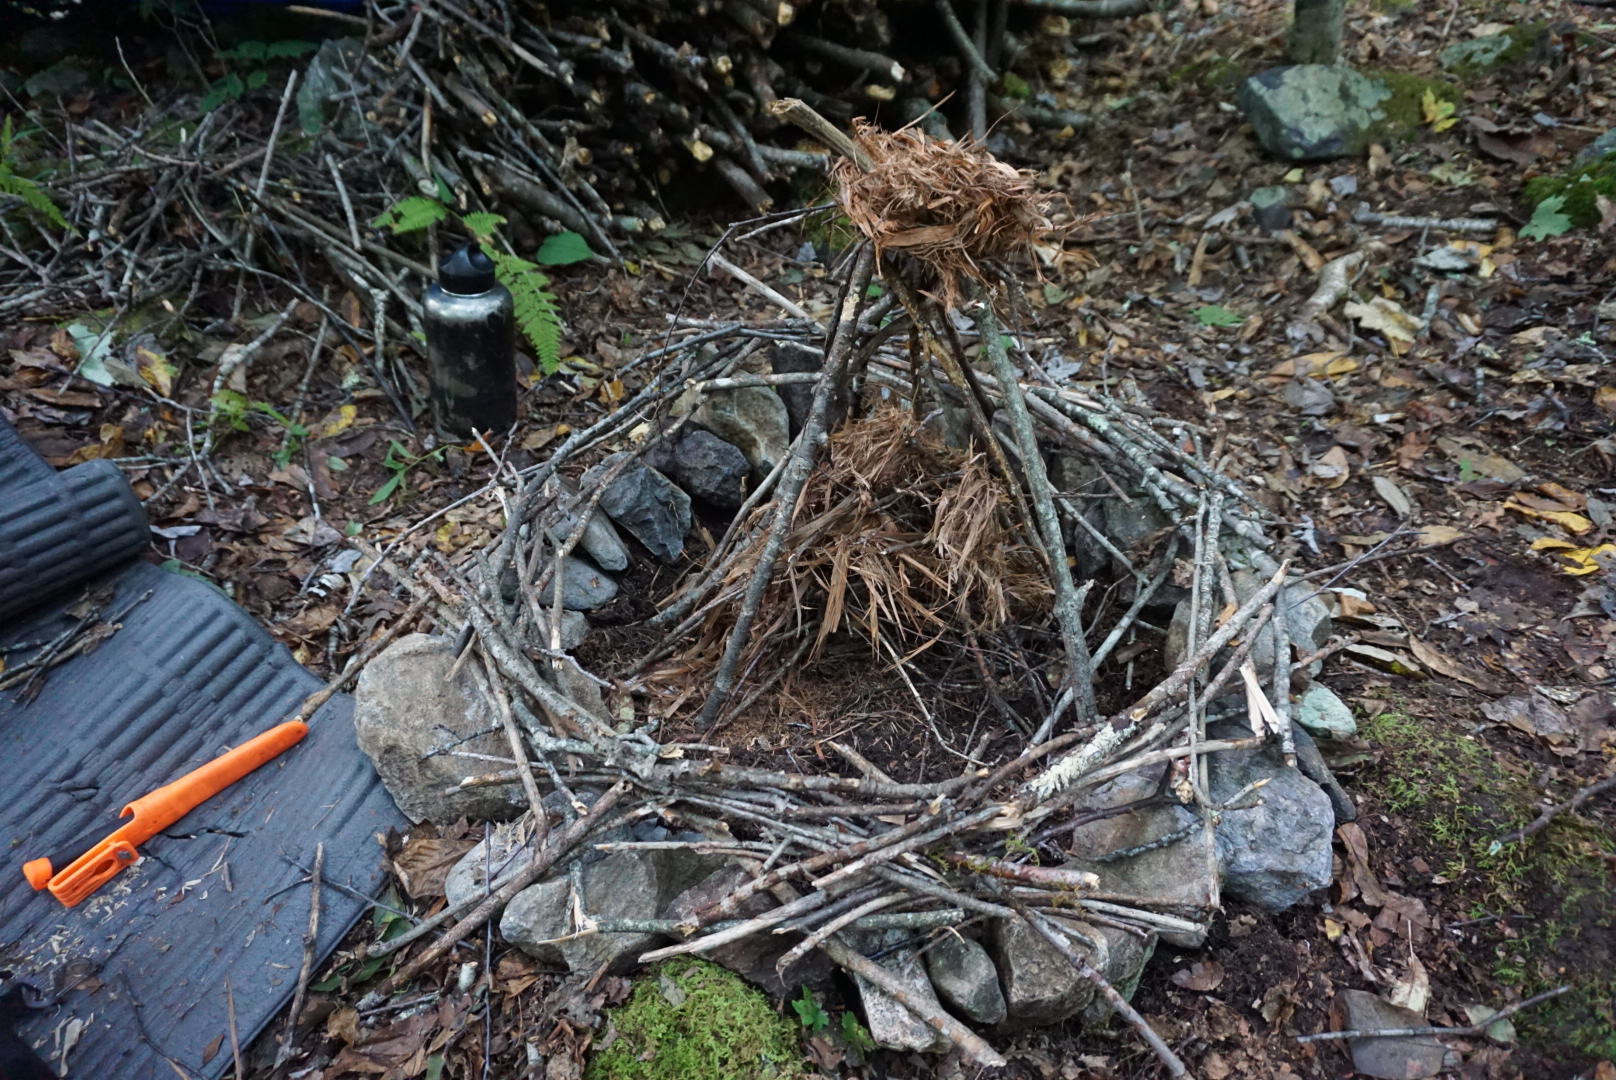 My fire house, with dried juniper wood nesting for kindling.